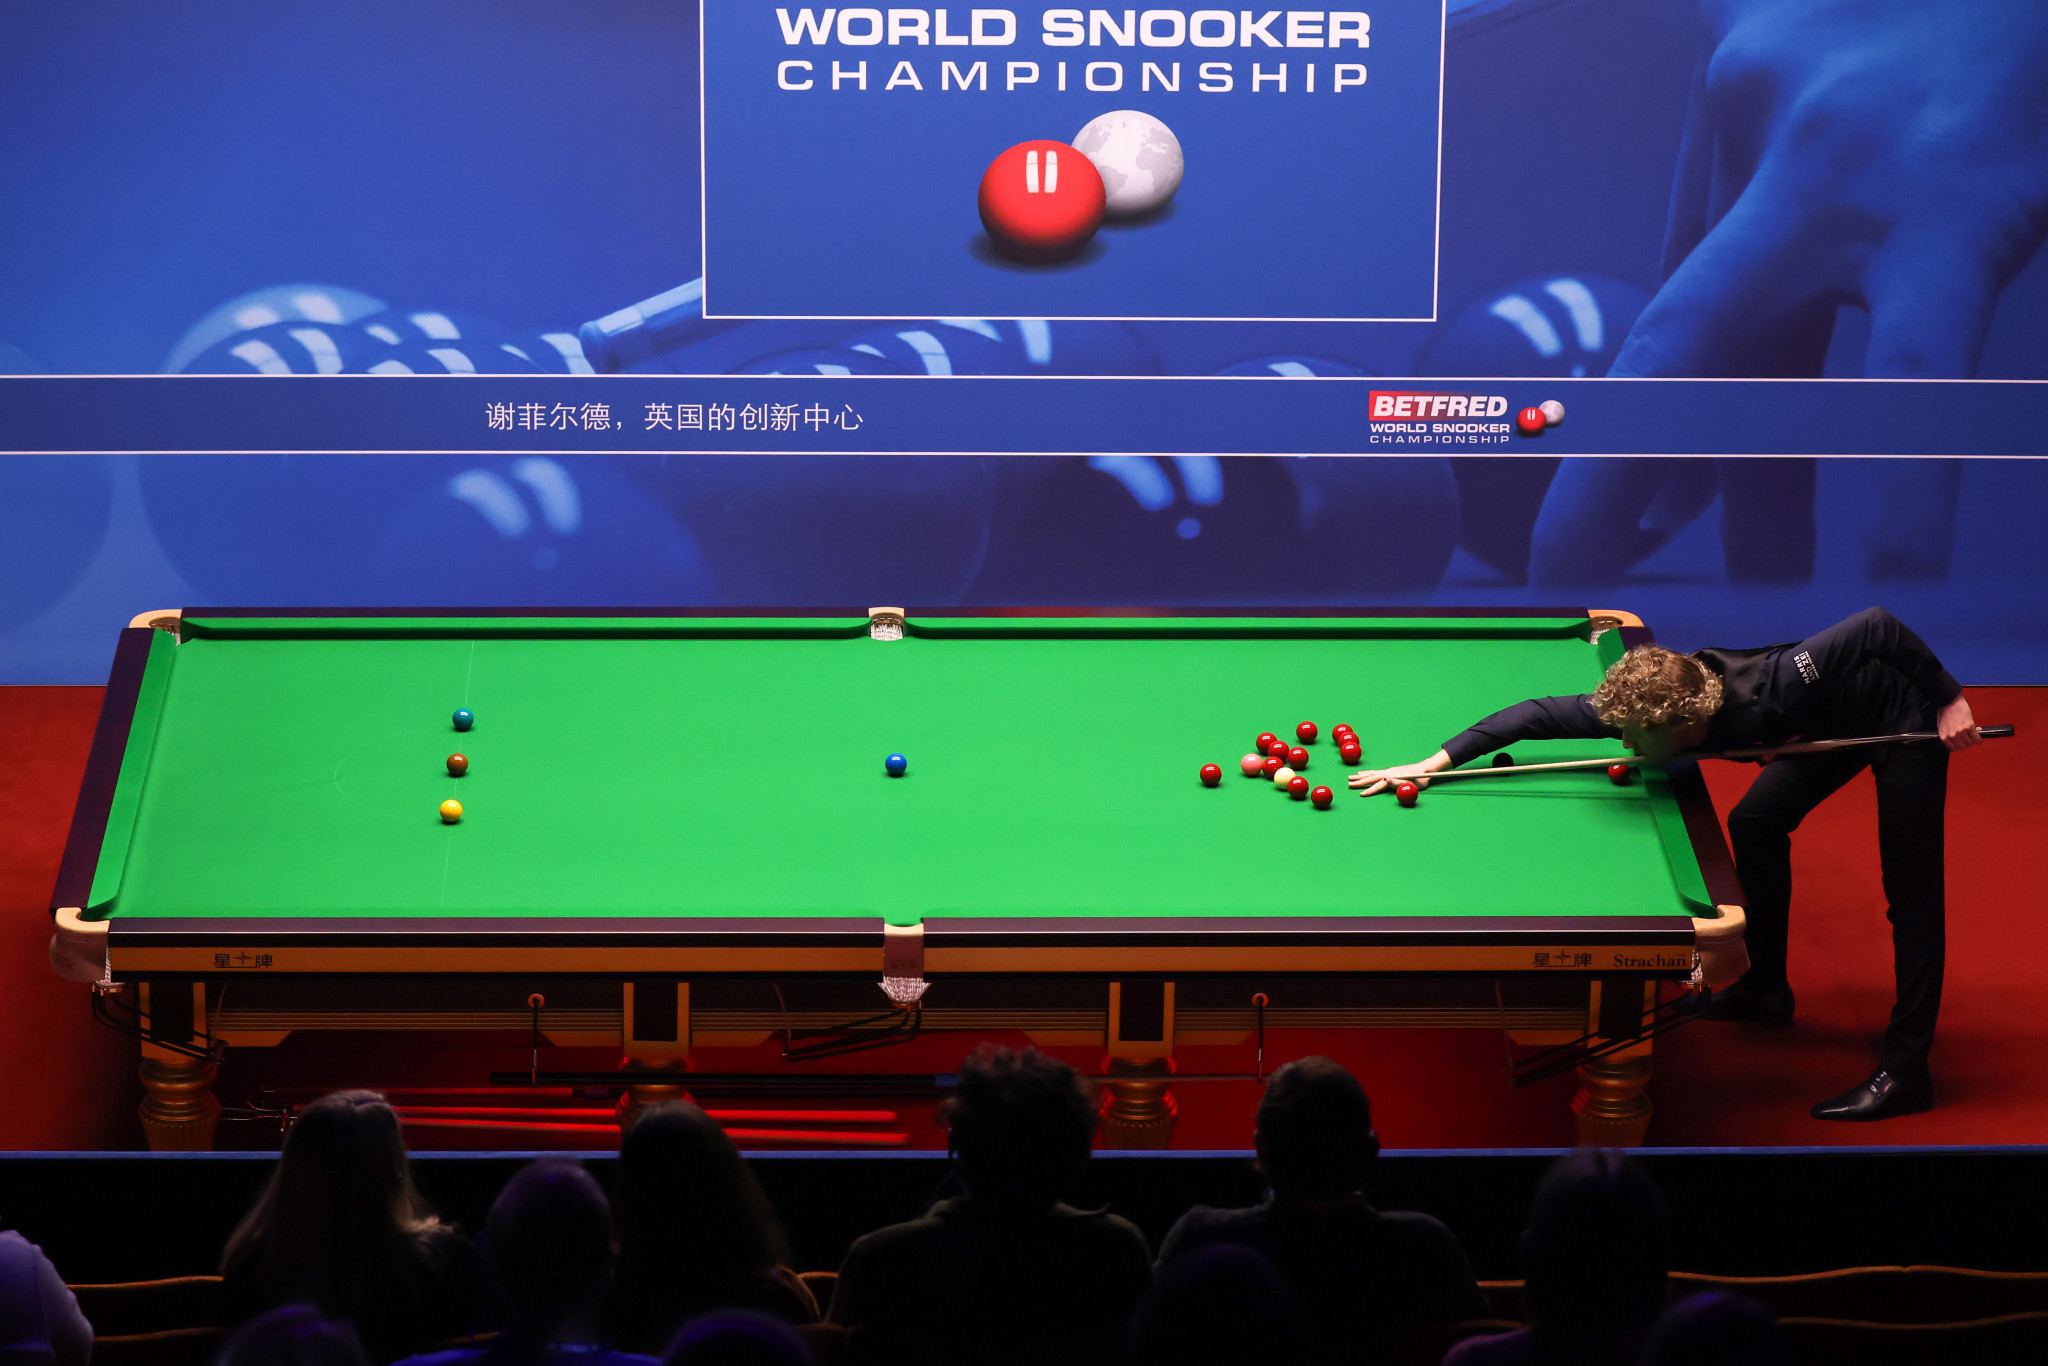 Robertson eases through as Maguire crashes out on day two of World Snooker Championship